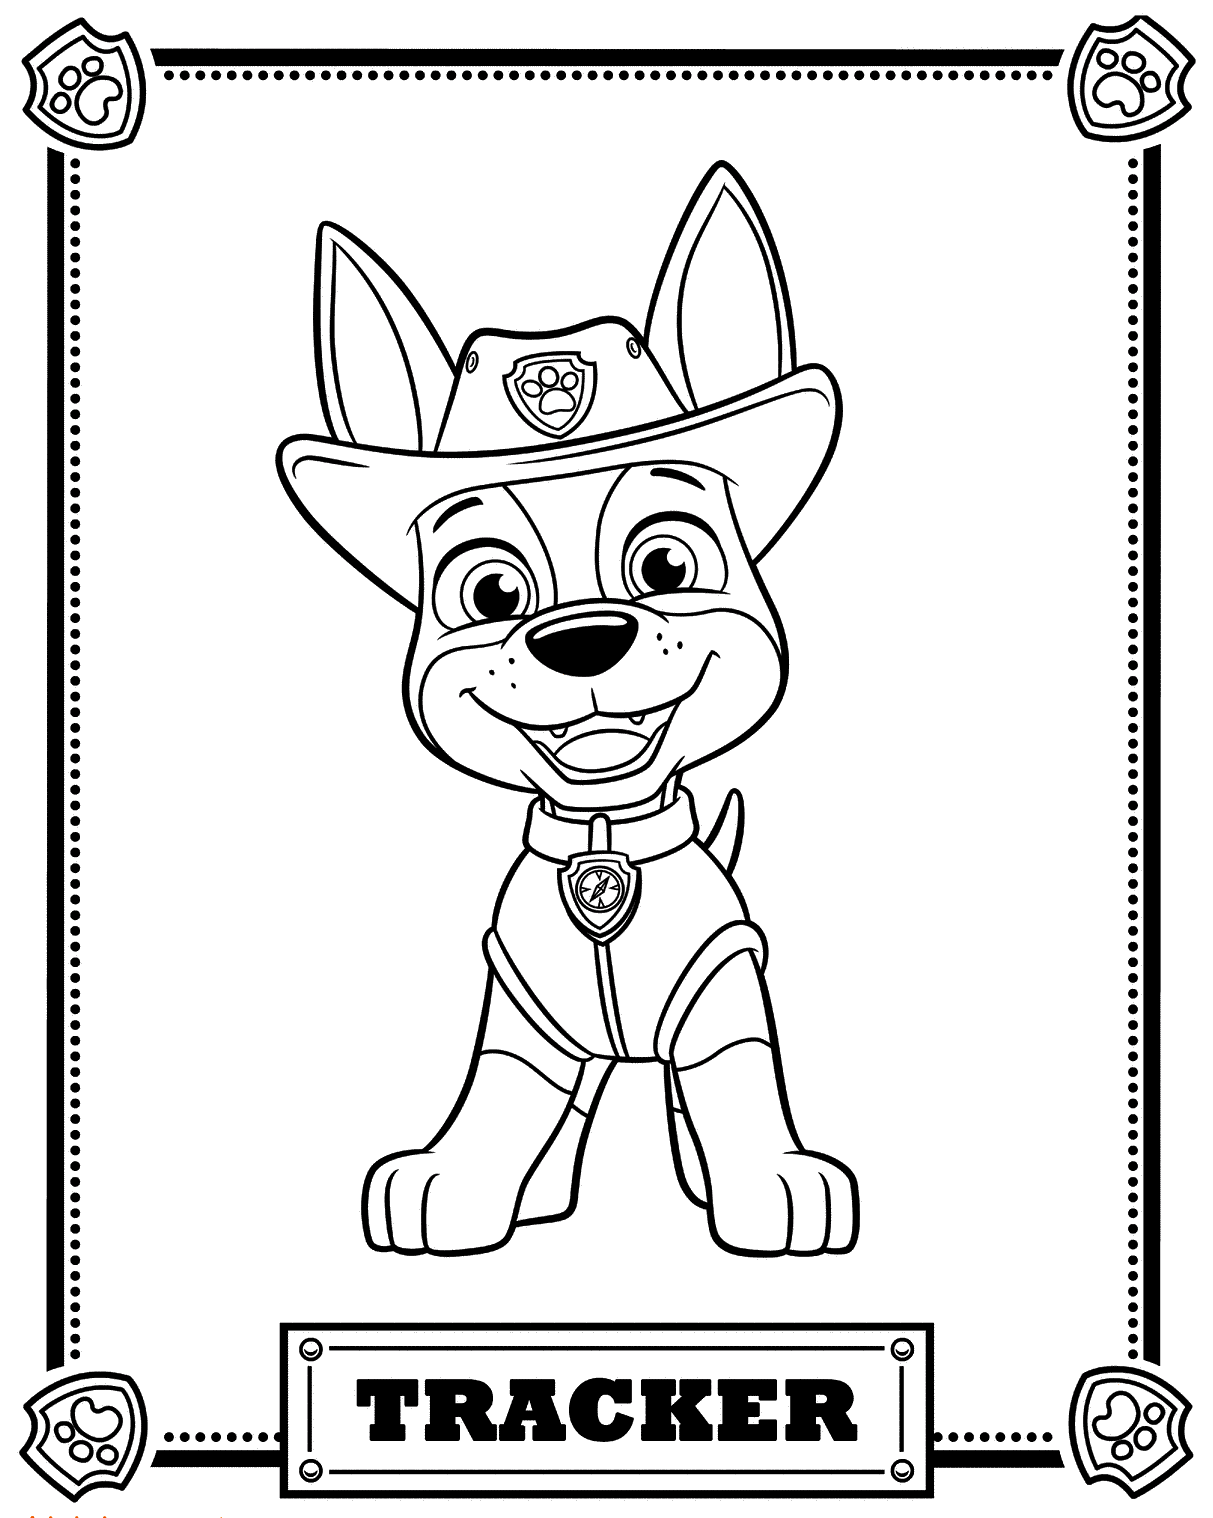 bank themed coloring pages - photo#21